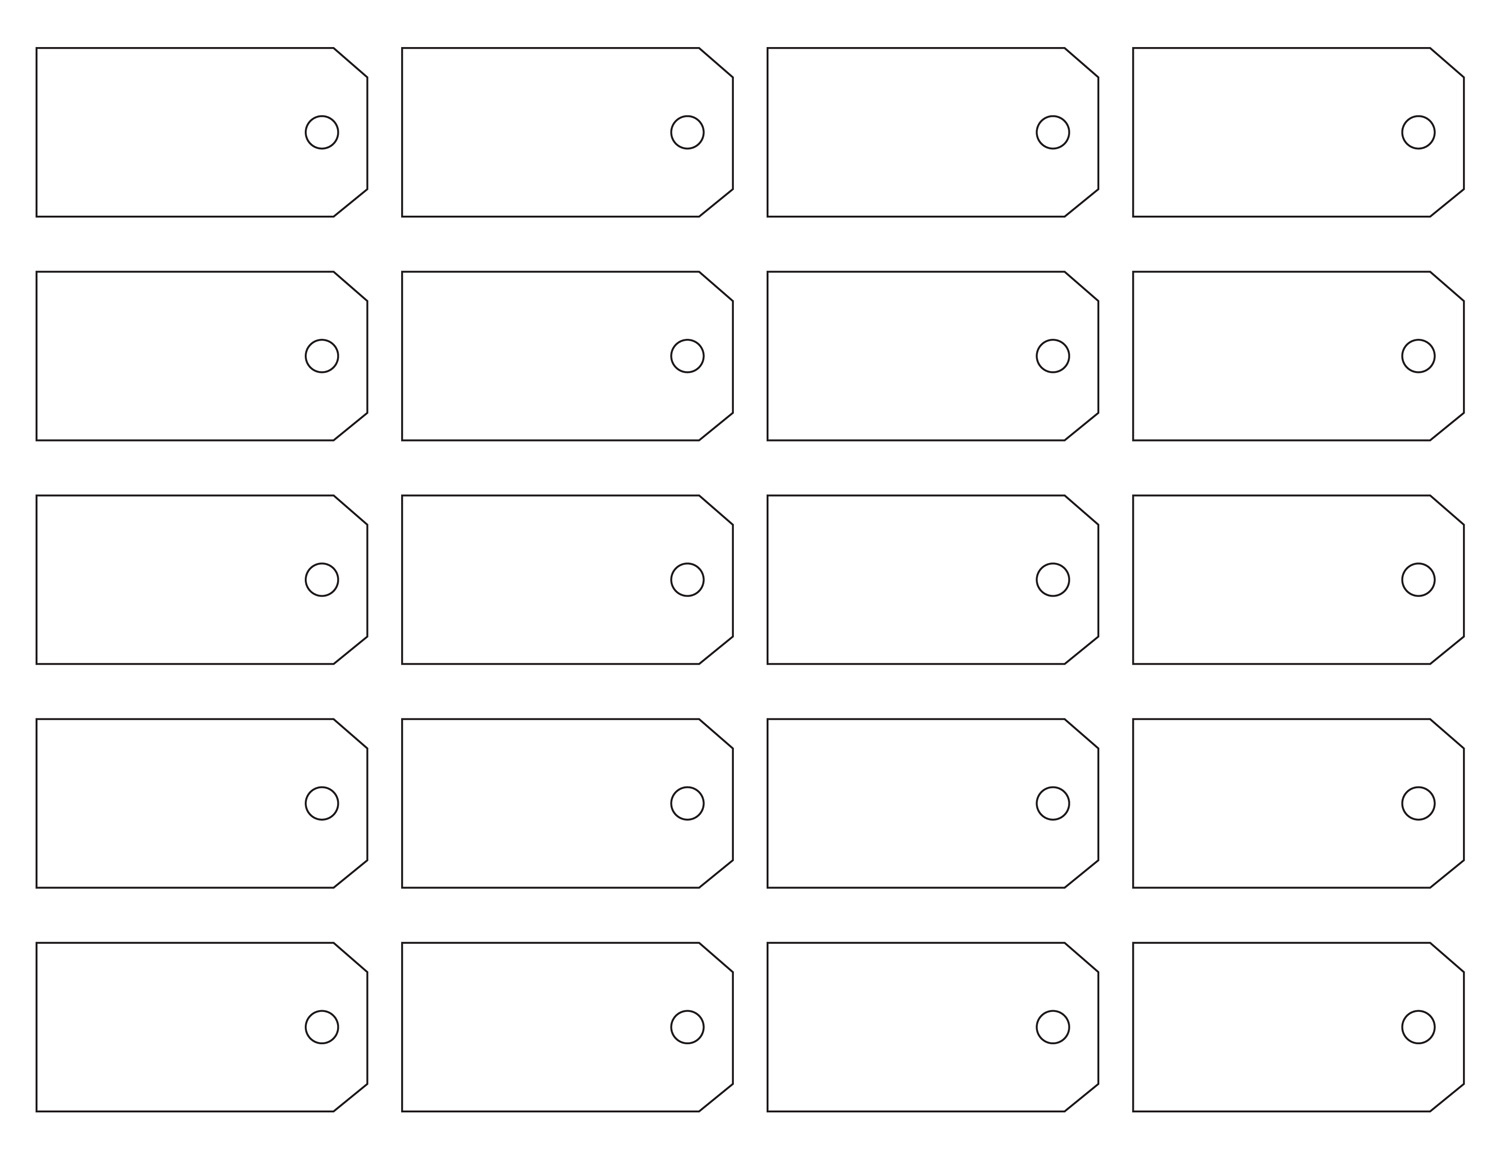 Recruitment House Get 21 Template Free Customized Name Tags Printable